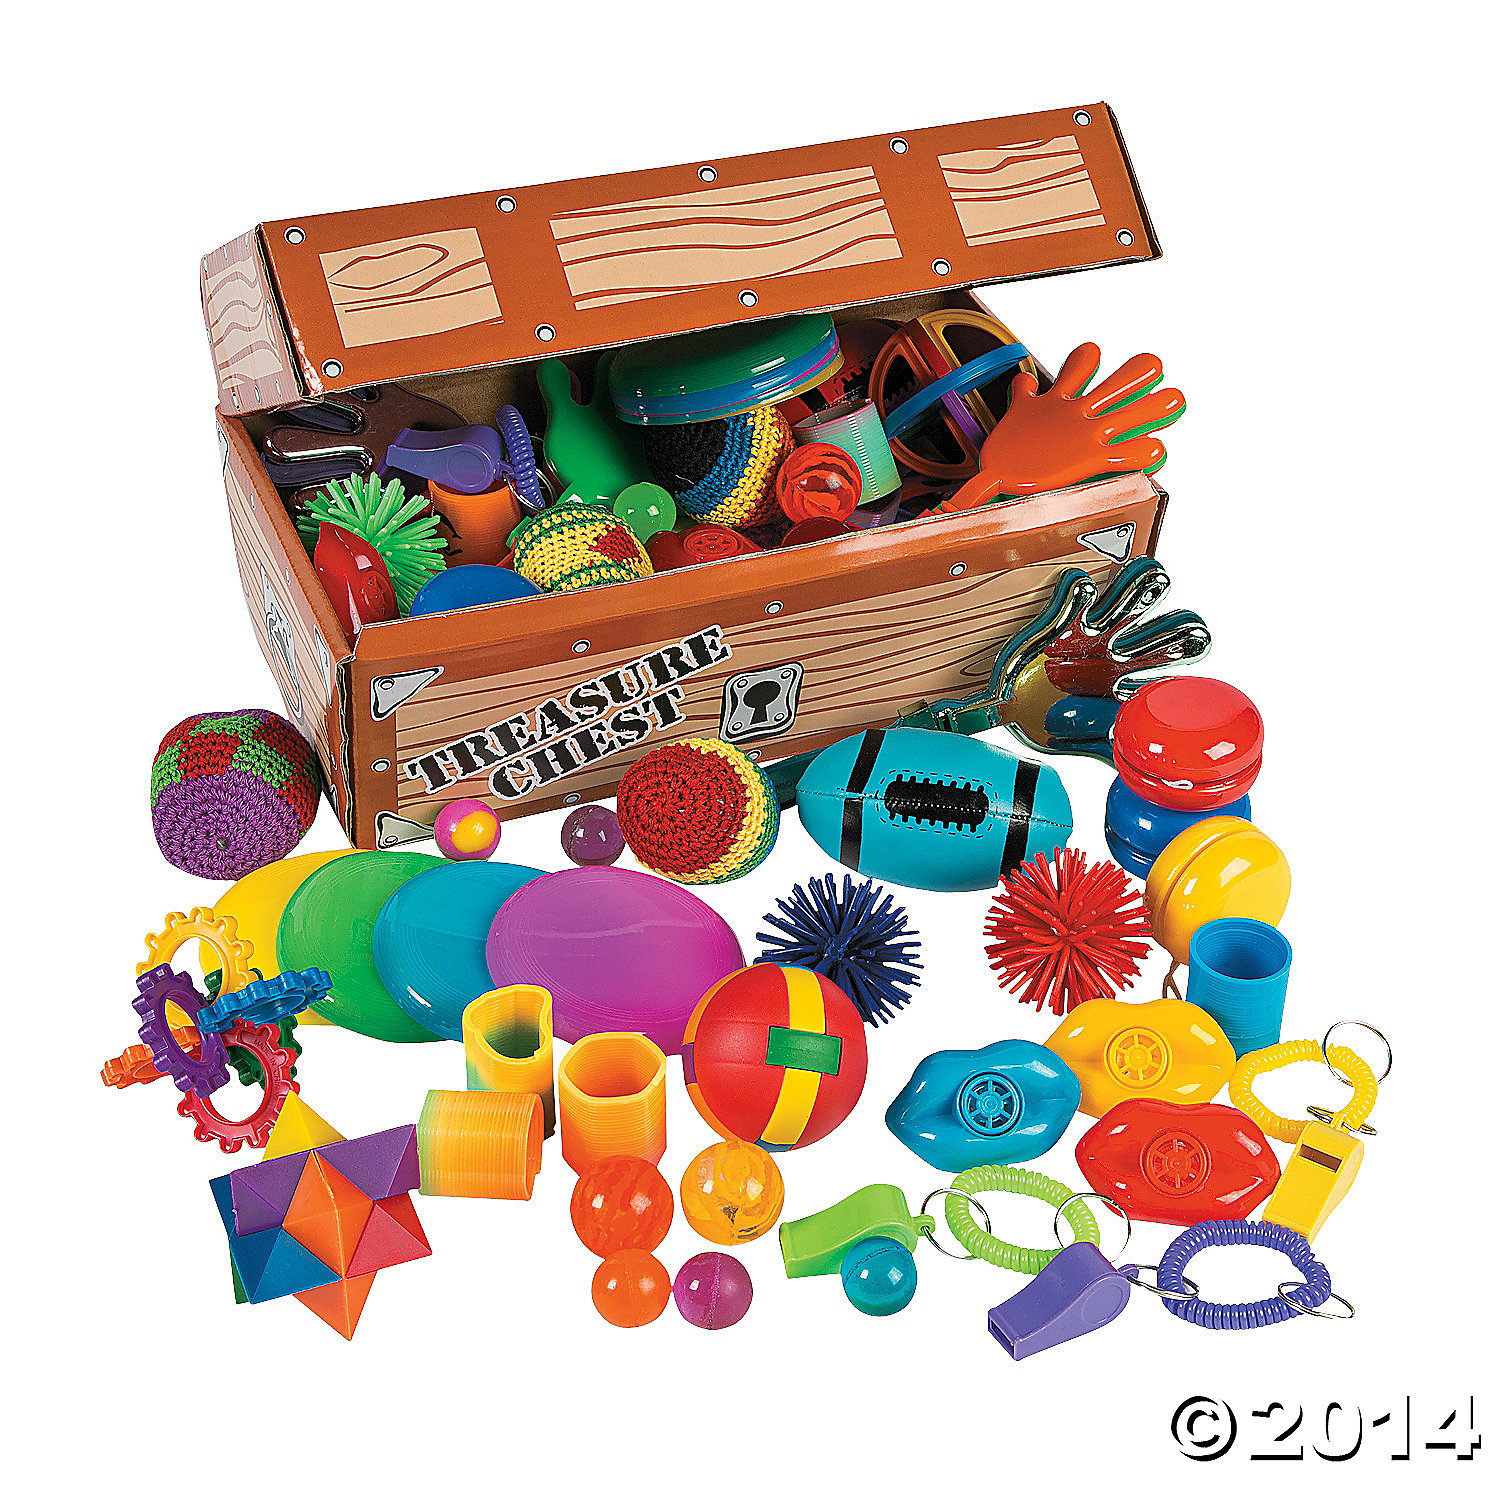 Cardboard Treasure Chest Toy Assortment